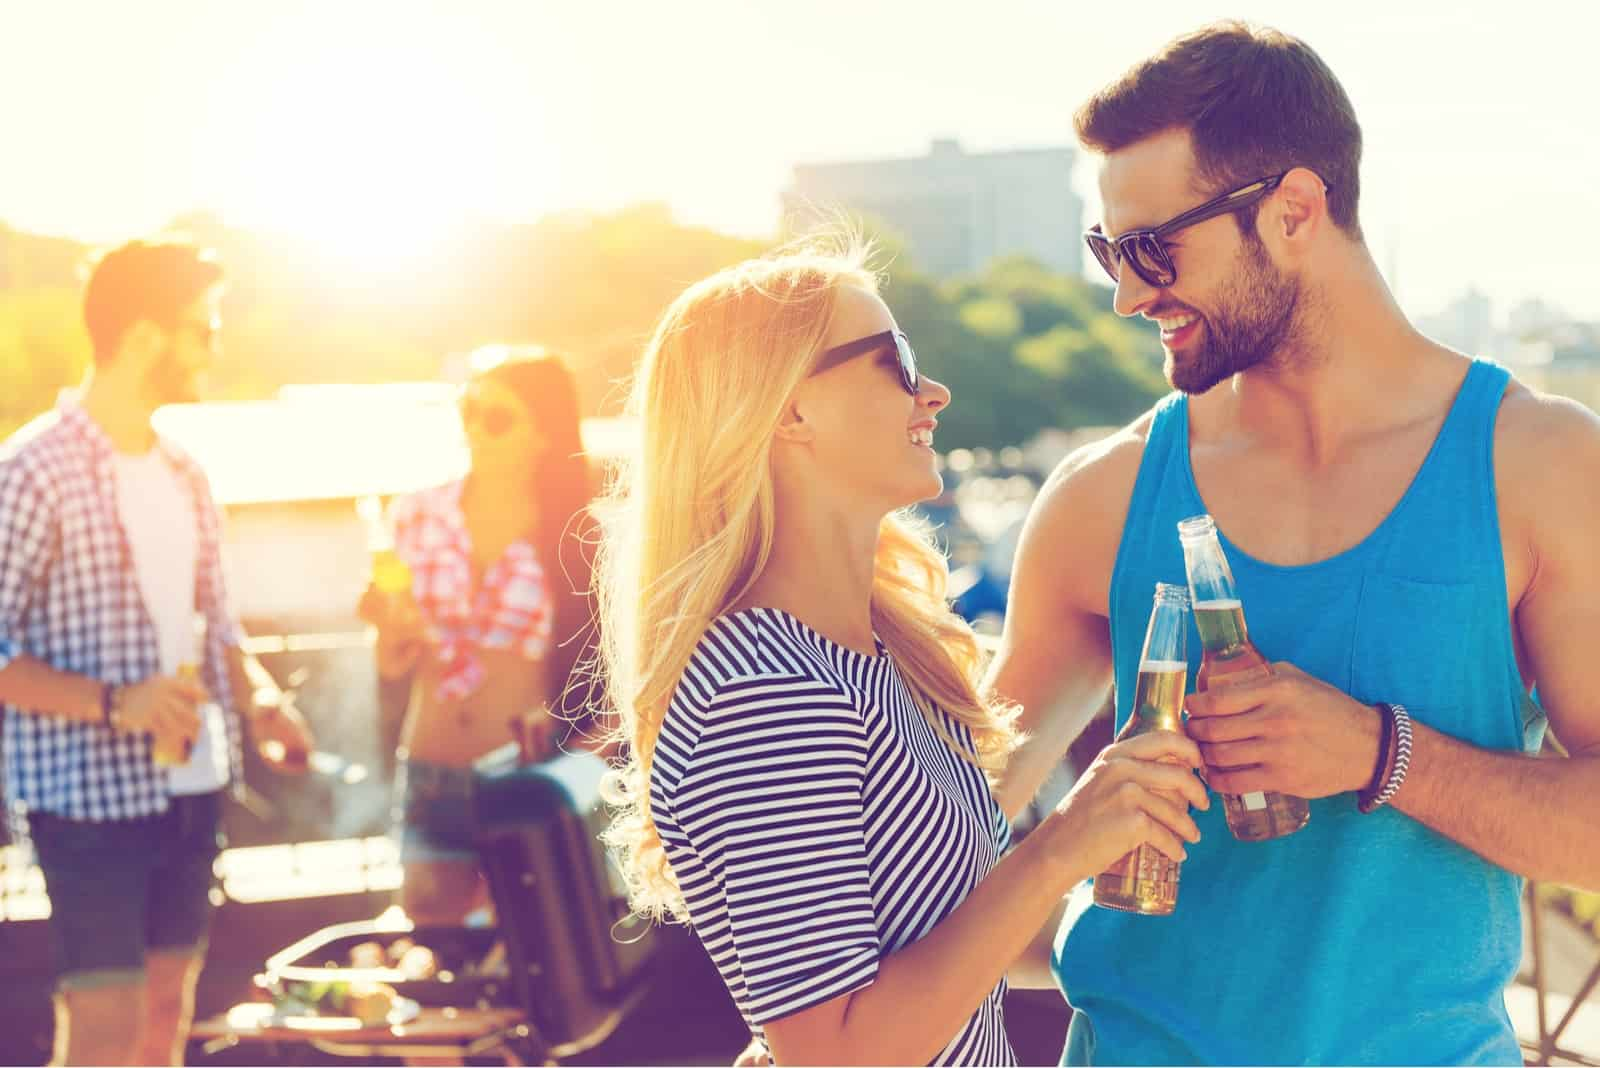 man and woman smiling while drinking drinks outdoor